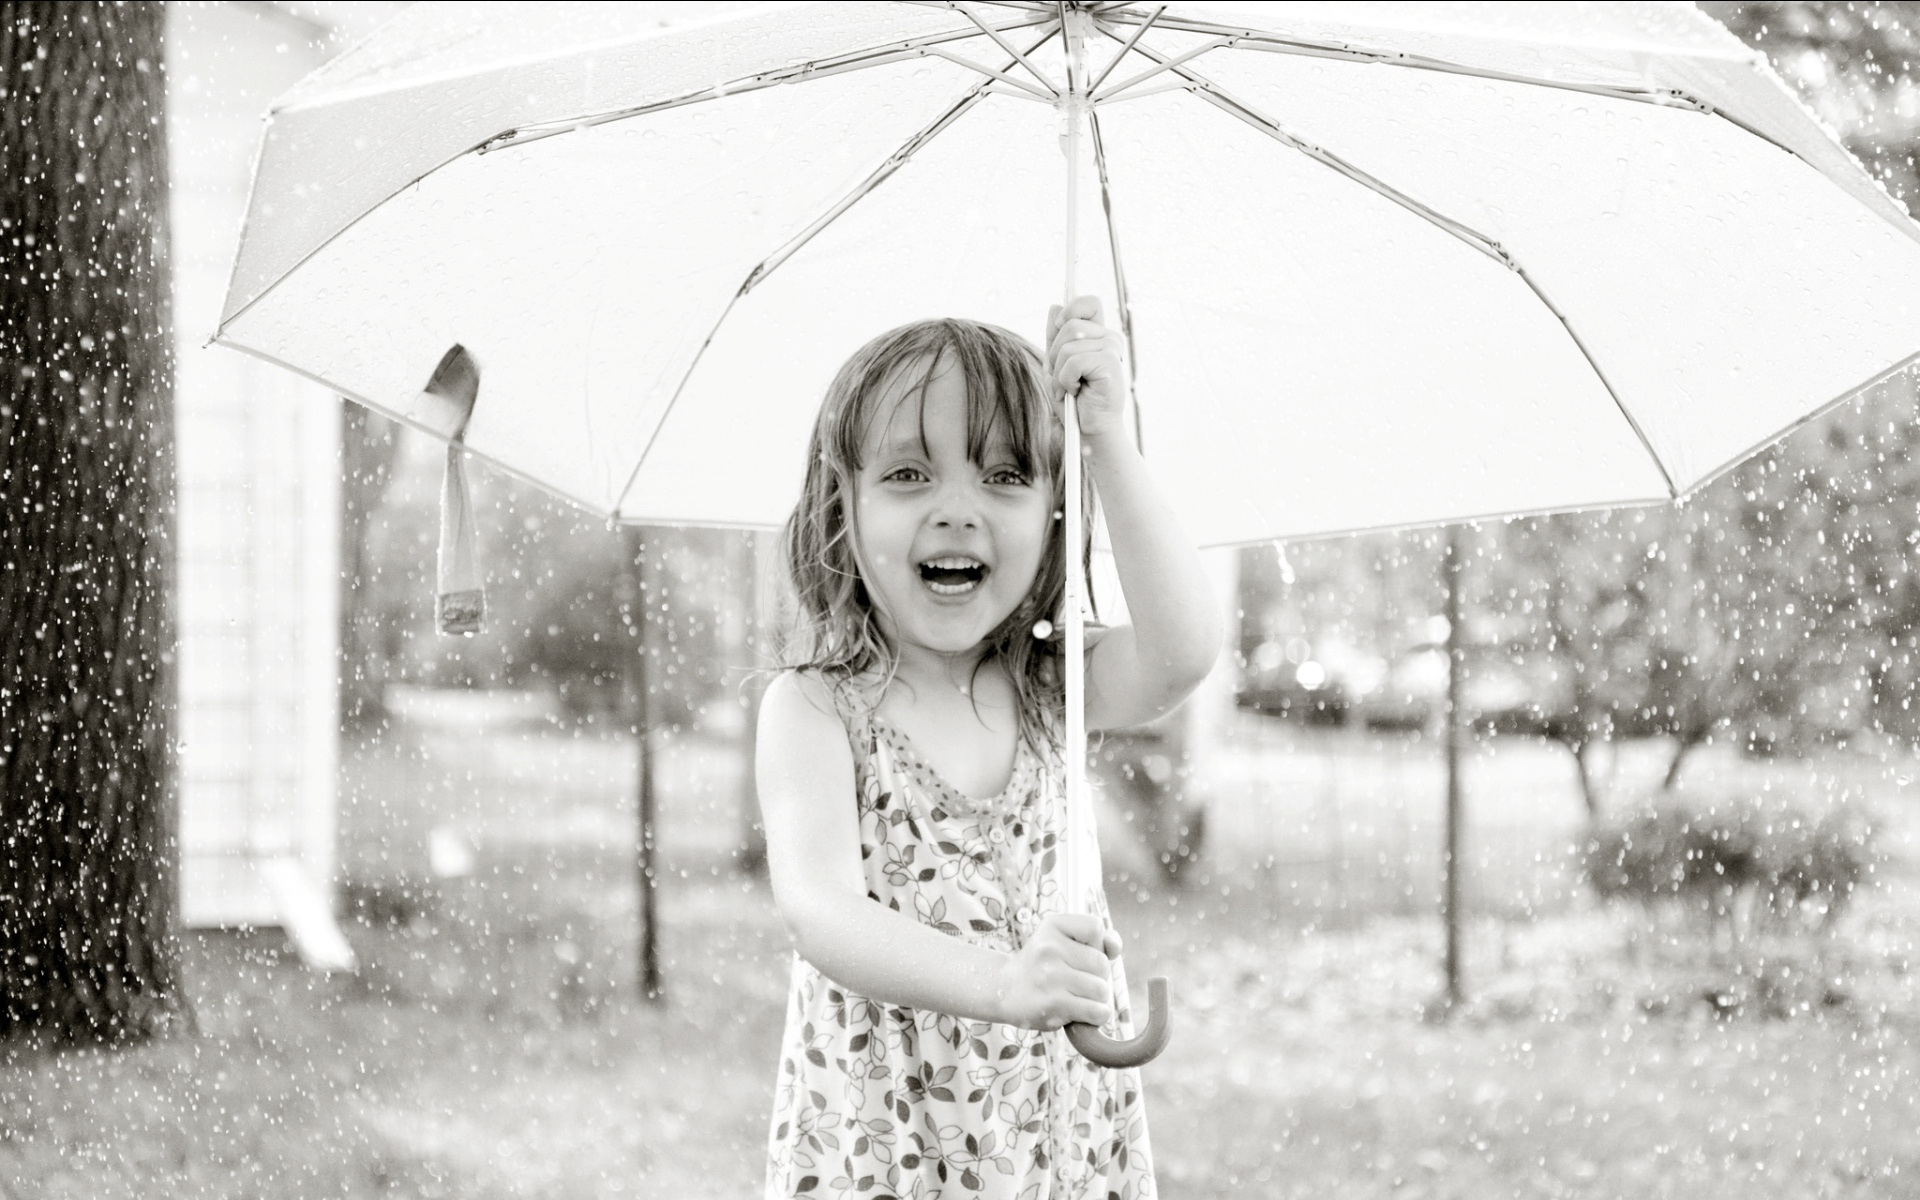 Rain baby with white umbrella click to view